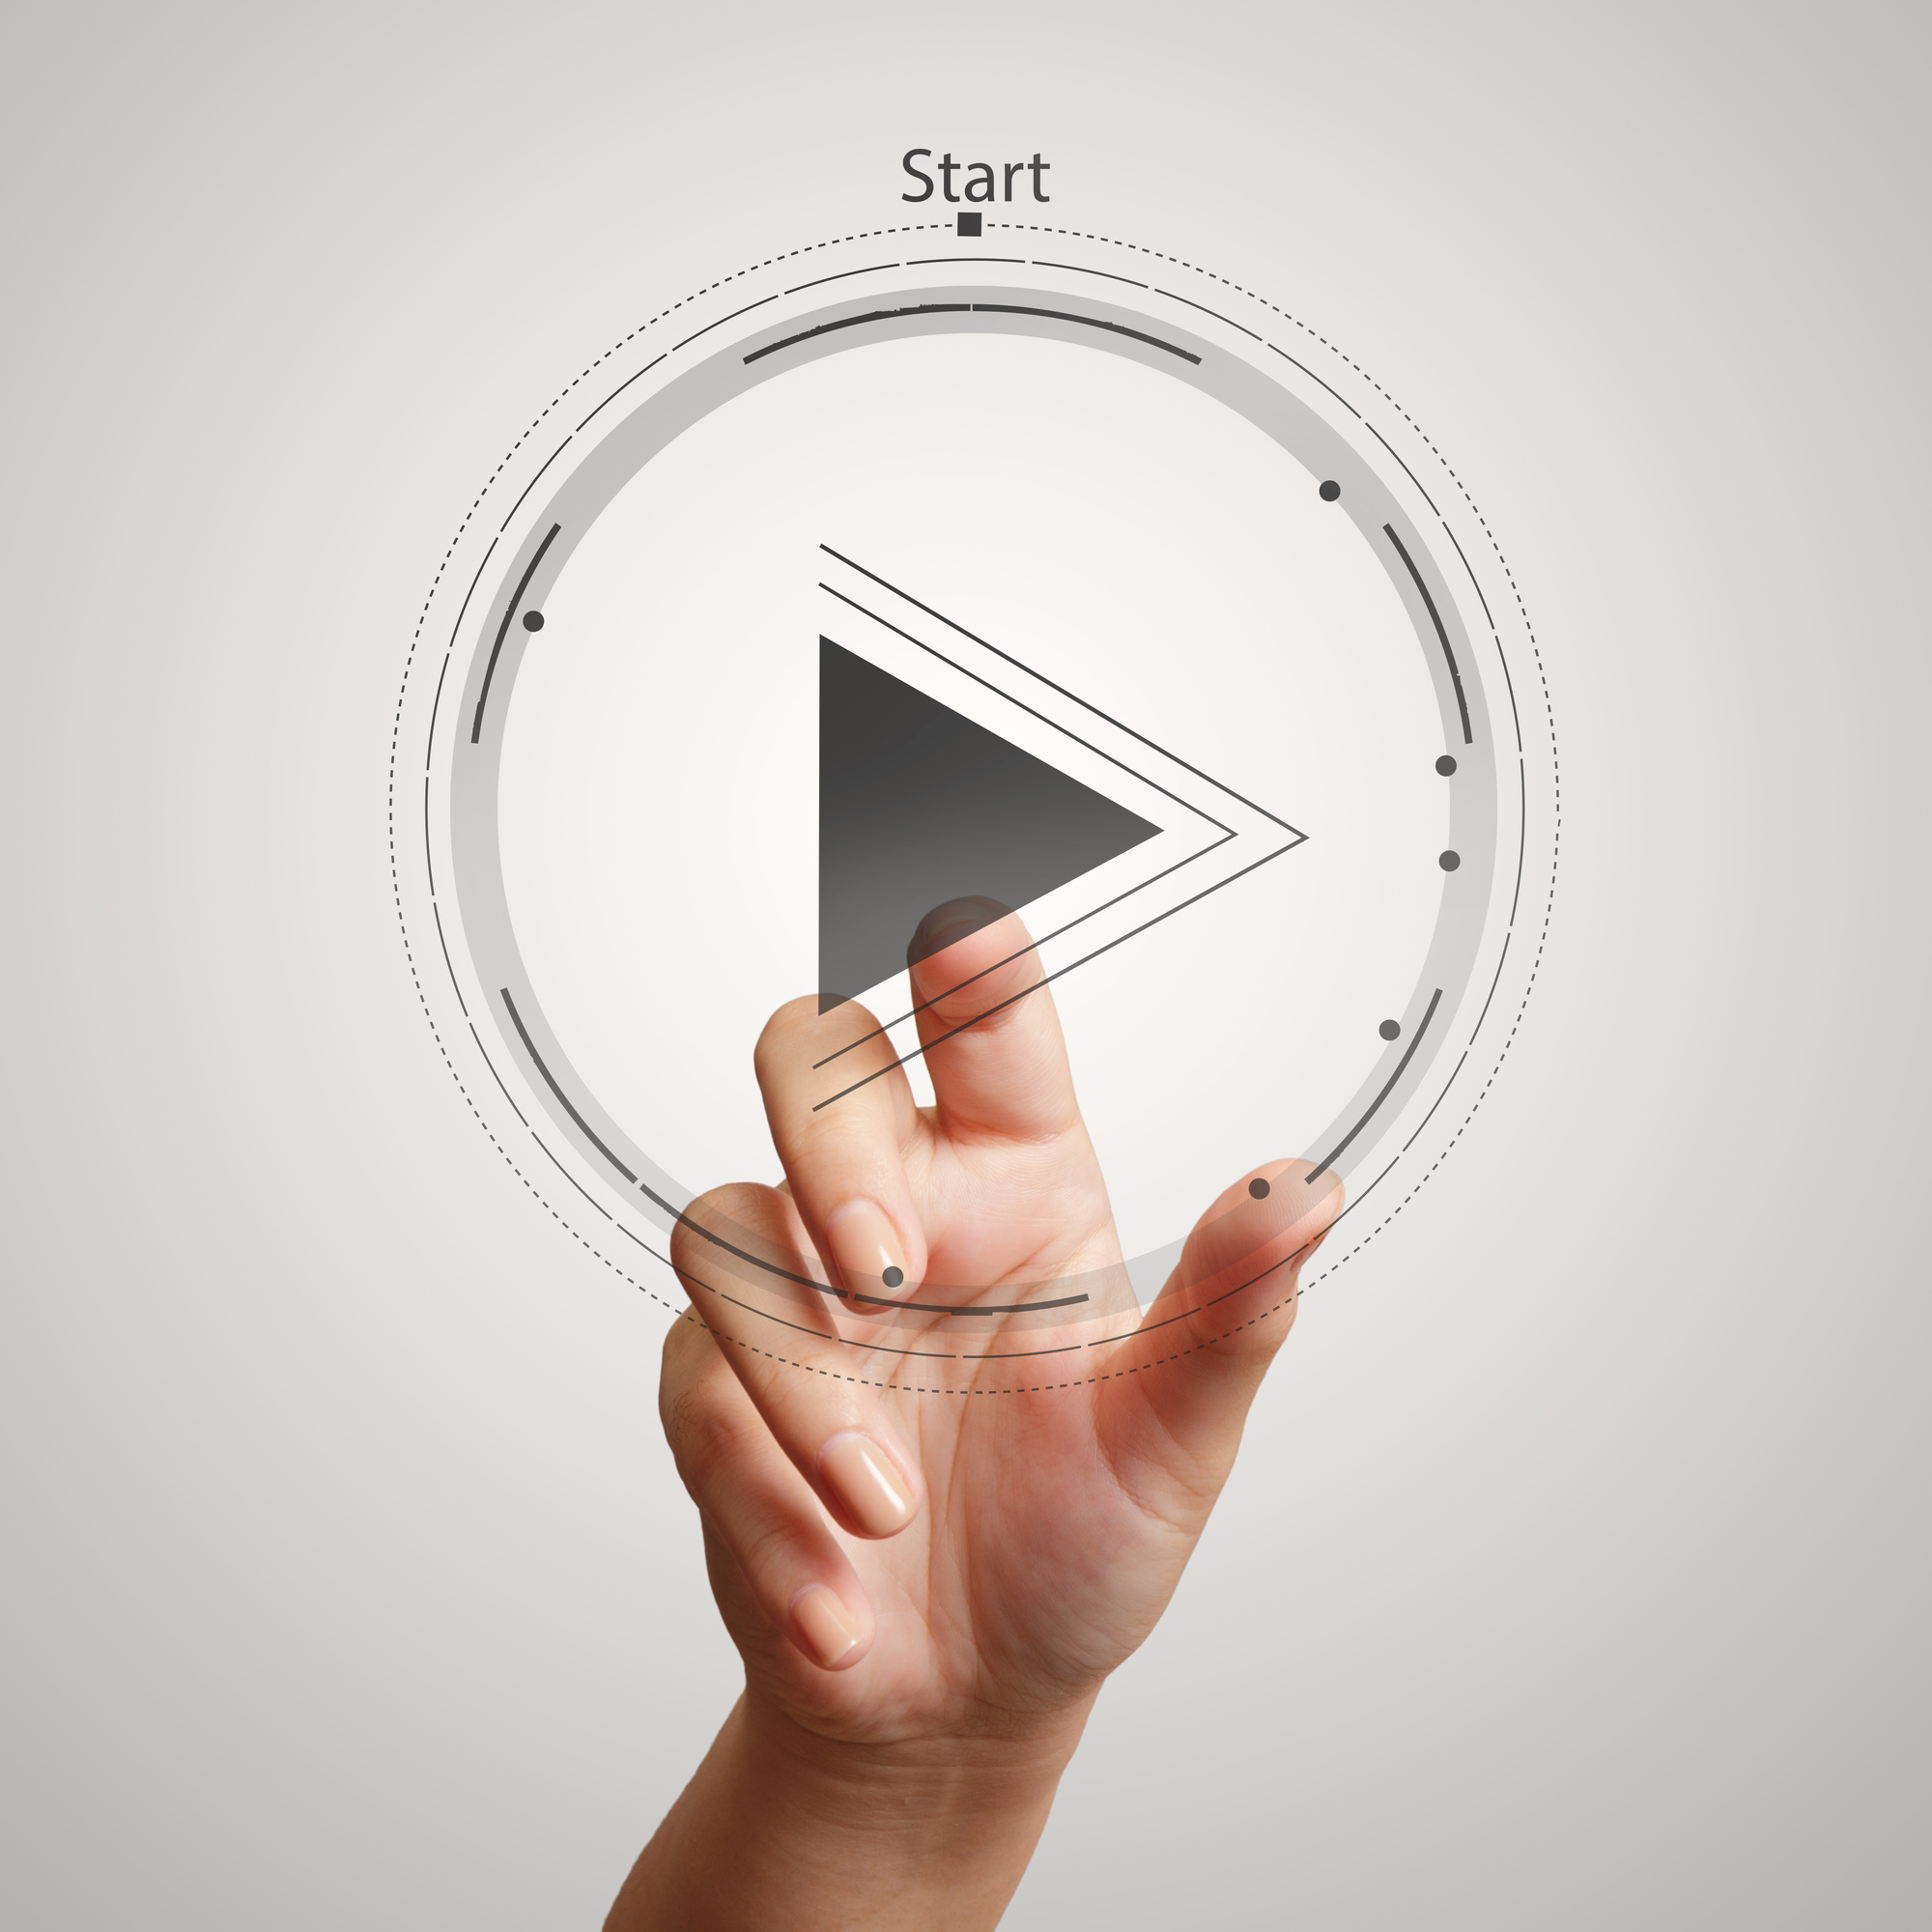 Hand press play button sign to start or initate projetcts as con